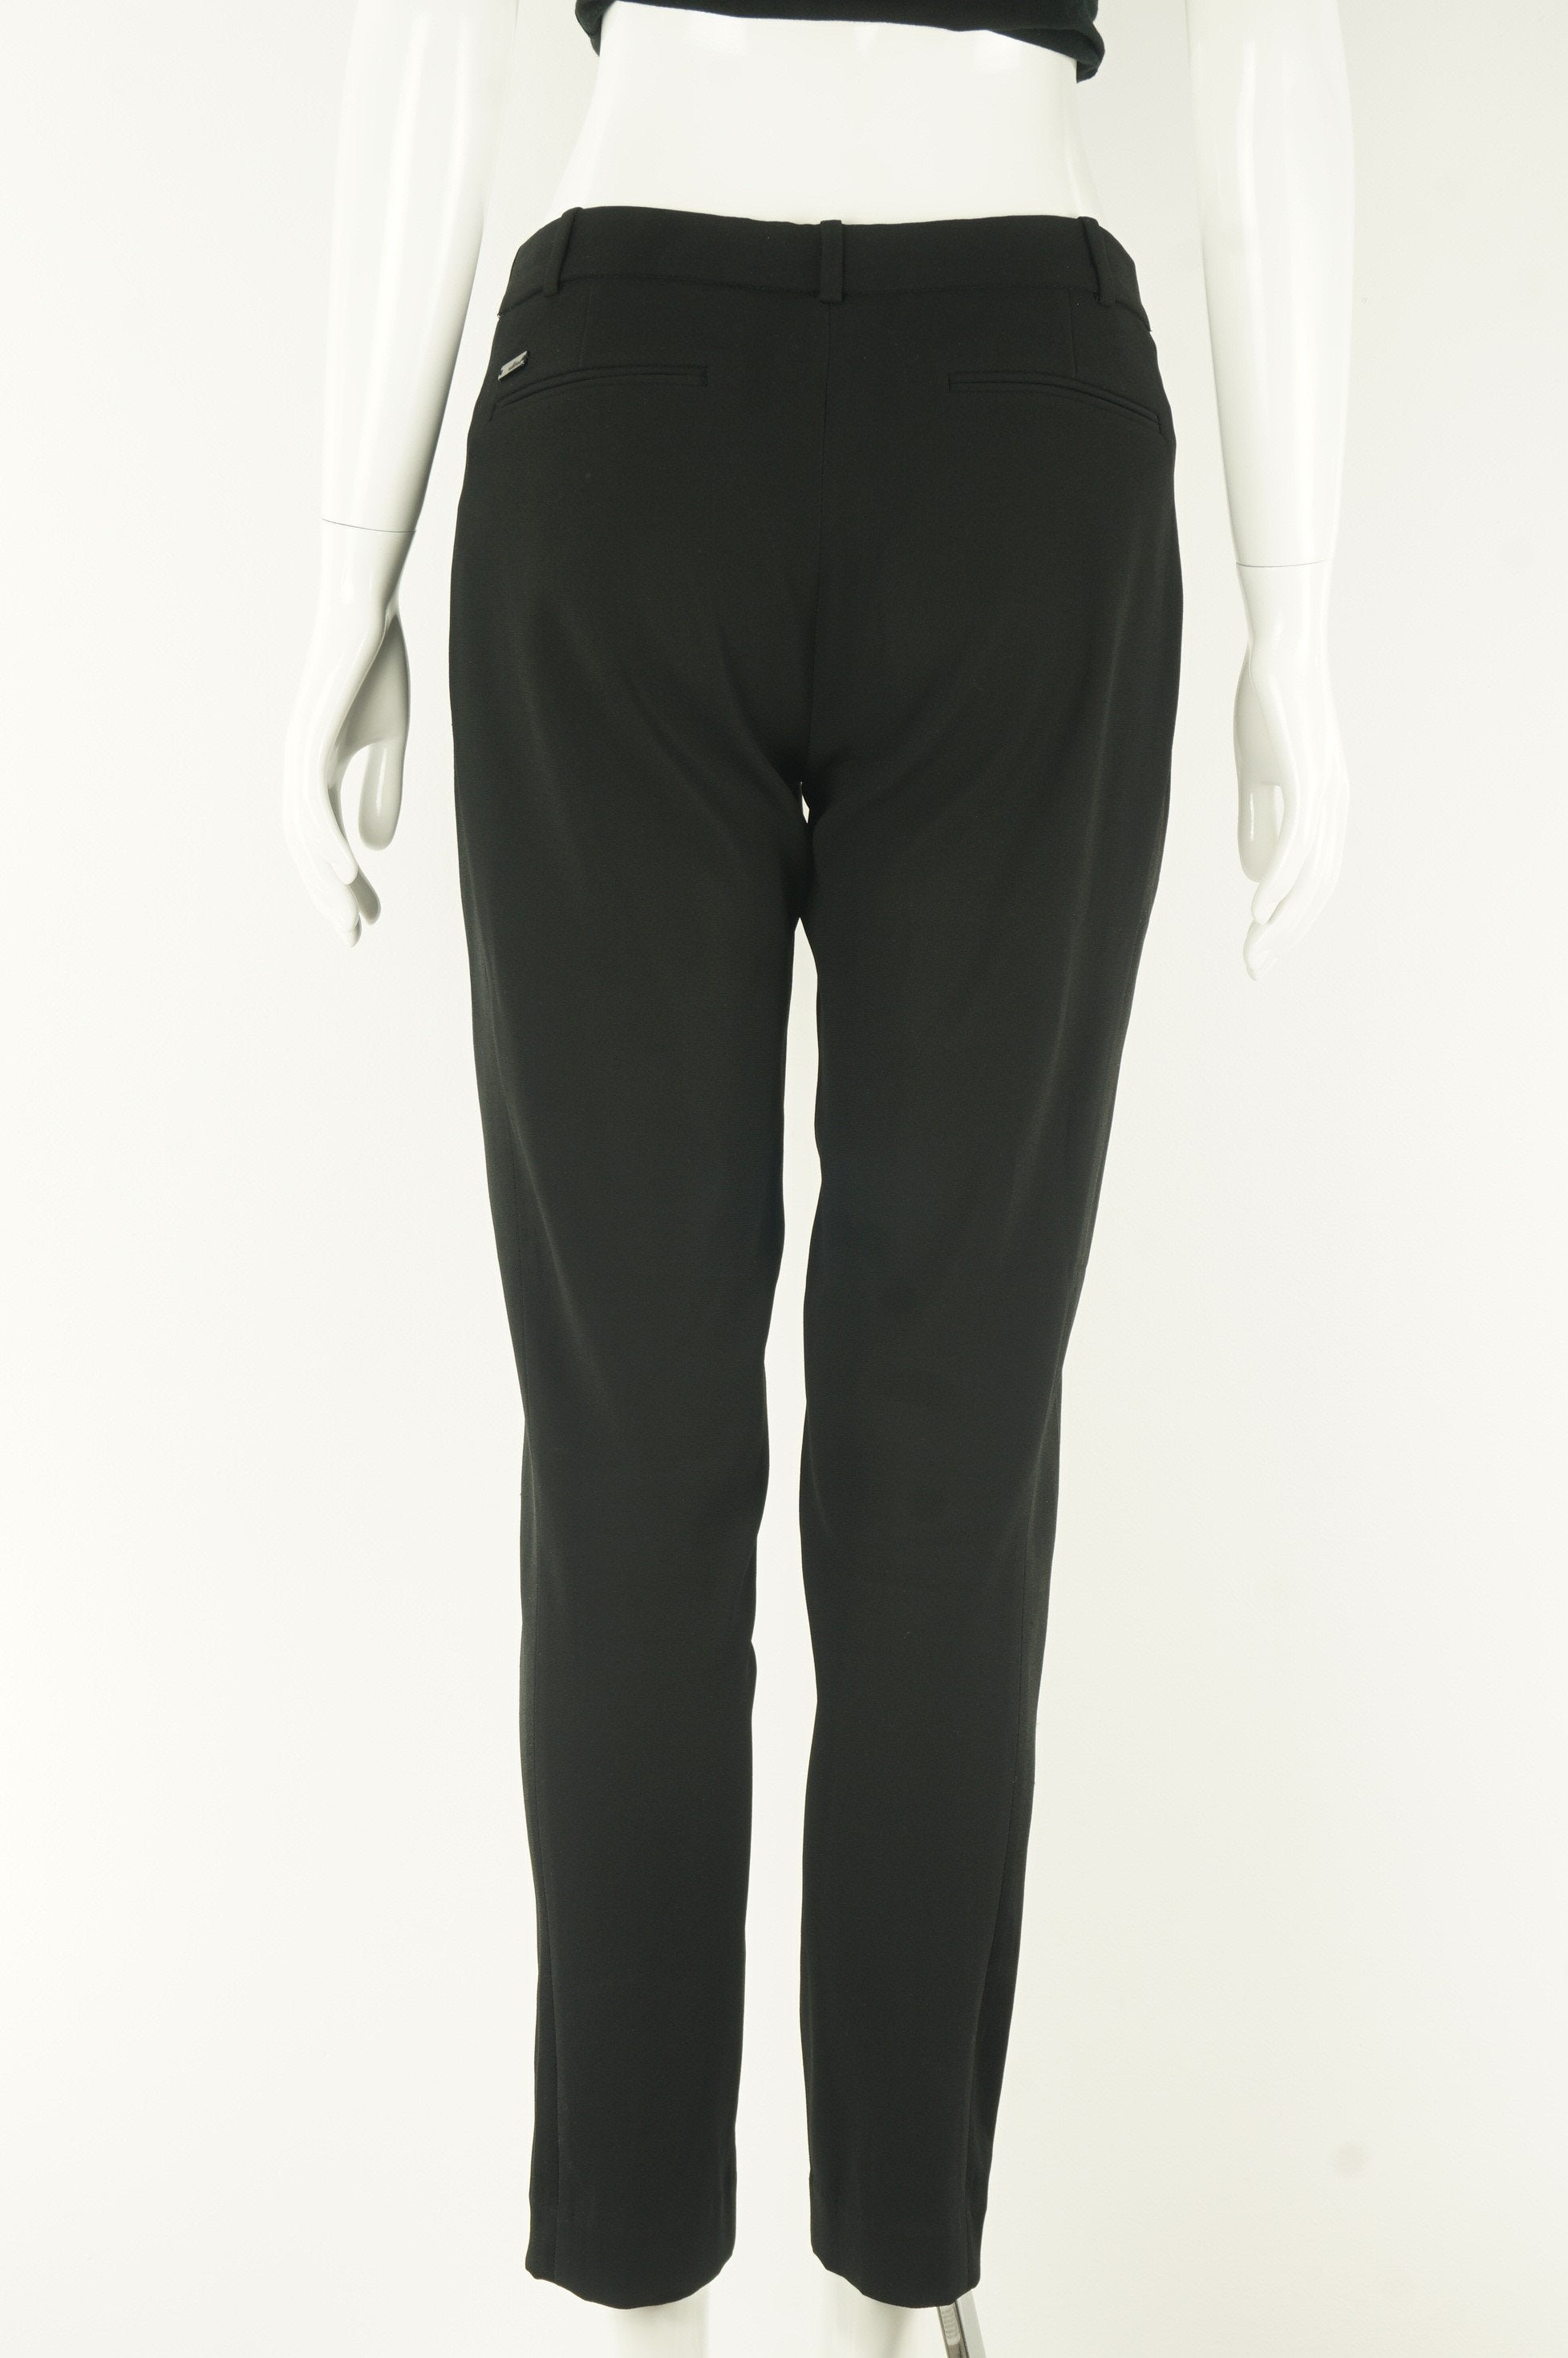 Wilfred Dress Pants with Stretchy Sides, A pair of dress pants that allow you to move freely and sit comfortably? Look no further!, Black, 82% triacetate, 18% polyester, women's Pants & Shorts, women's Black Pants & Shorts, Wilfred women's Pants & Shorts, Aritzia women's dress pants, women's comfortable office pants